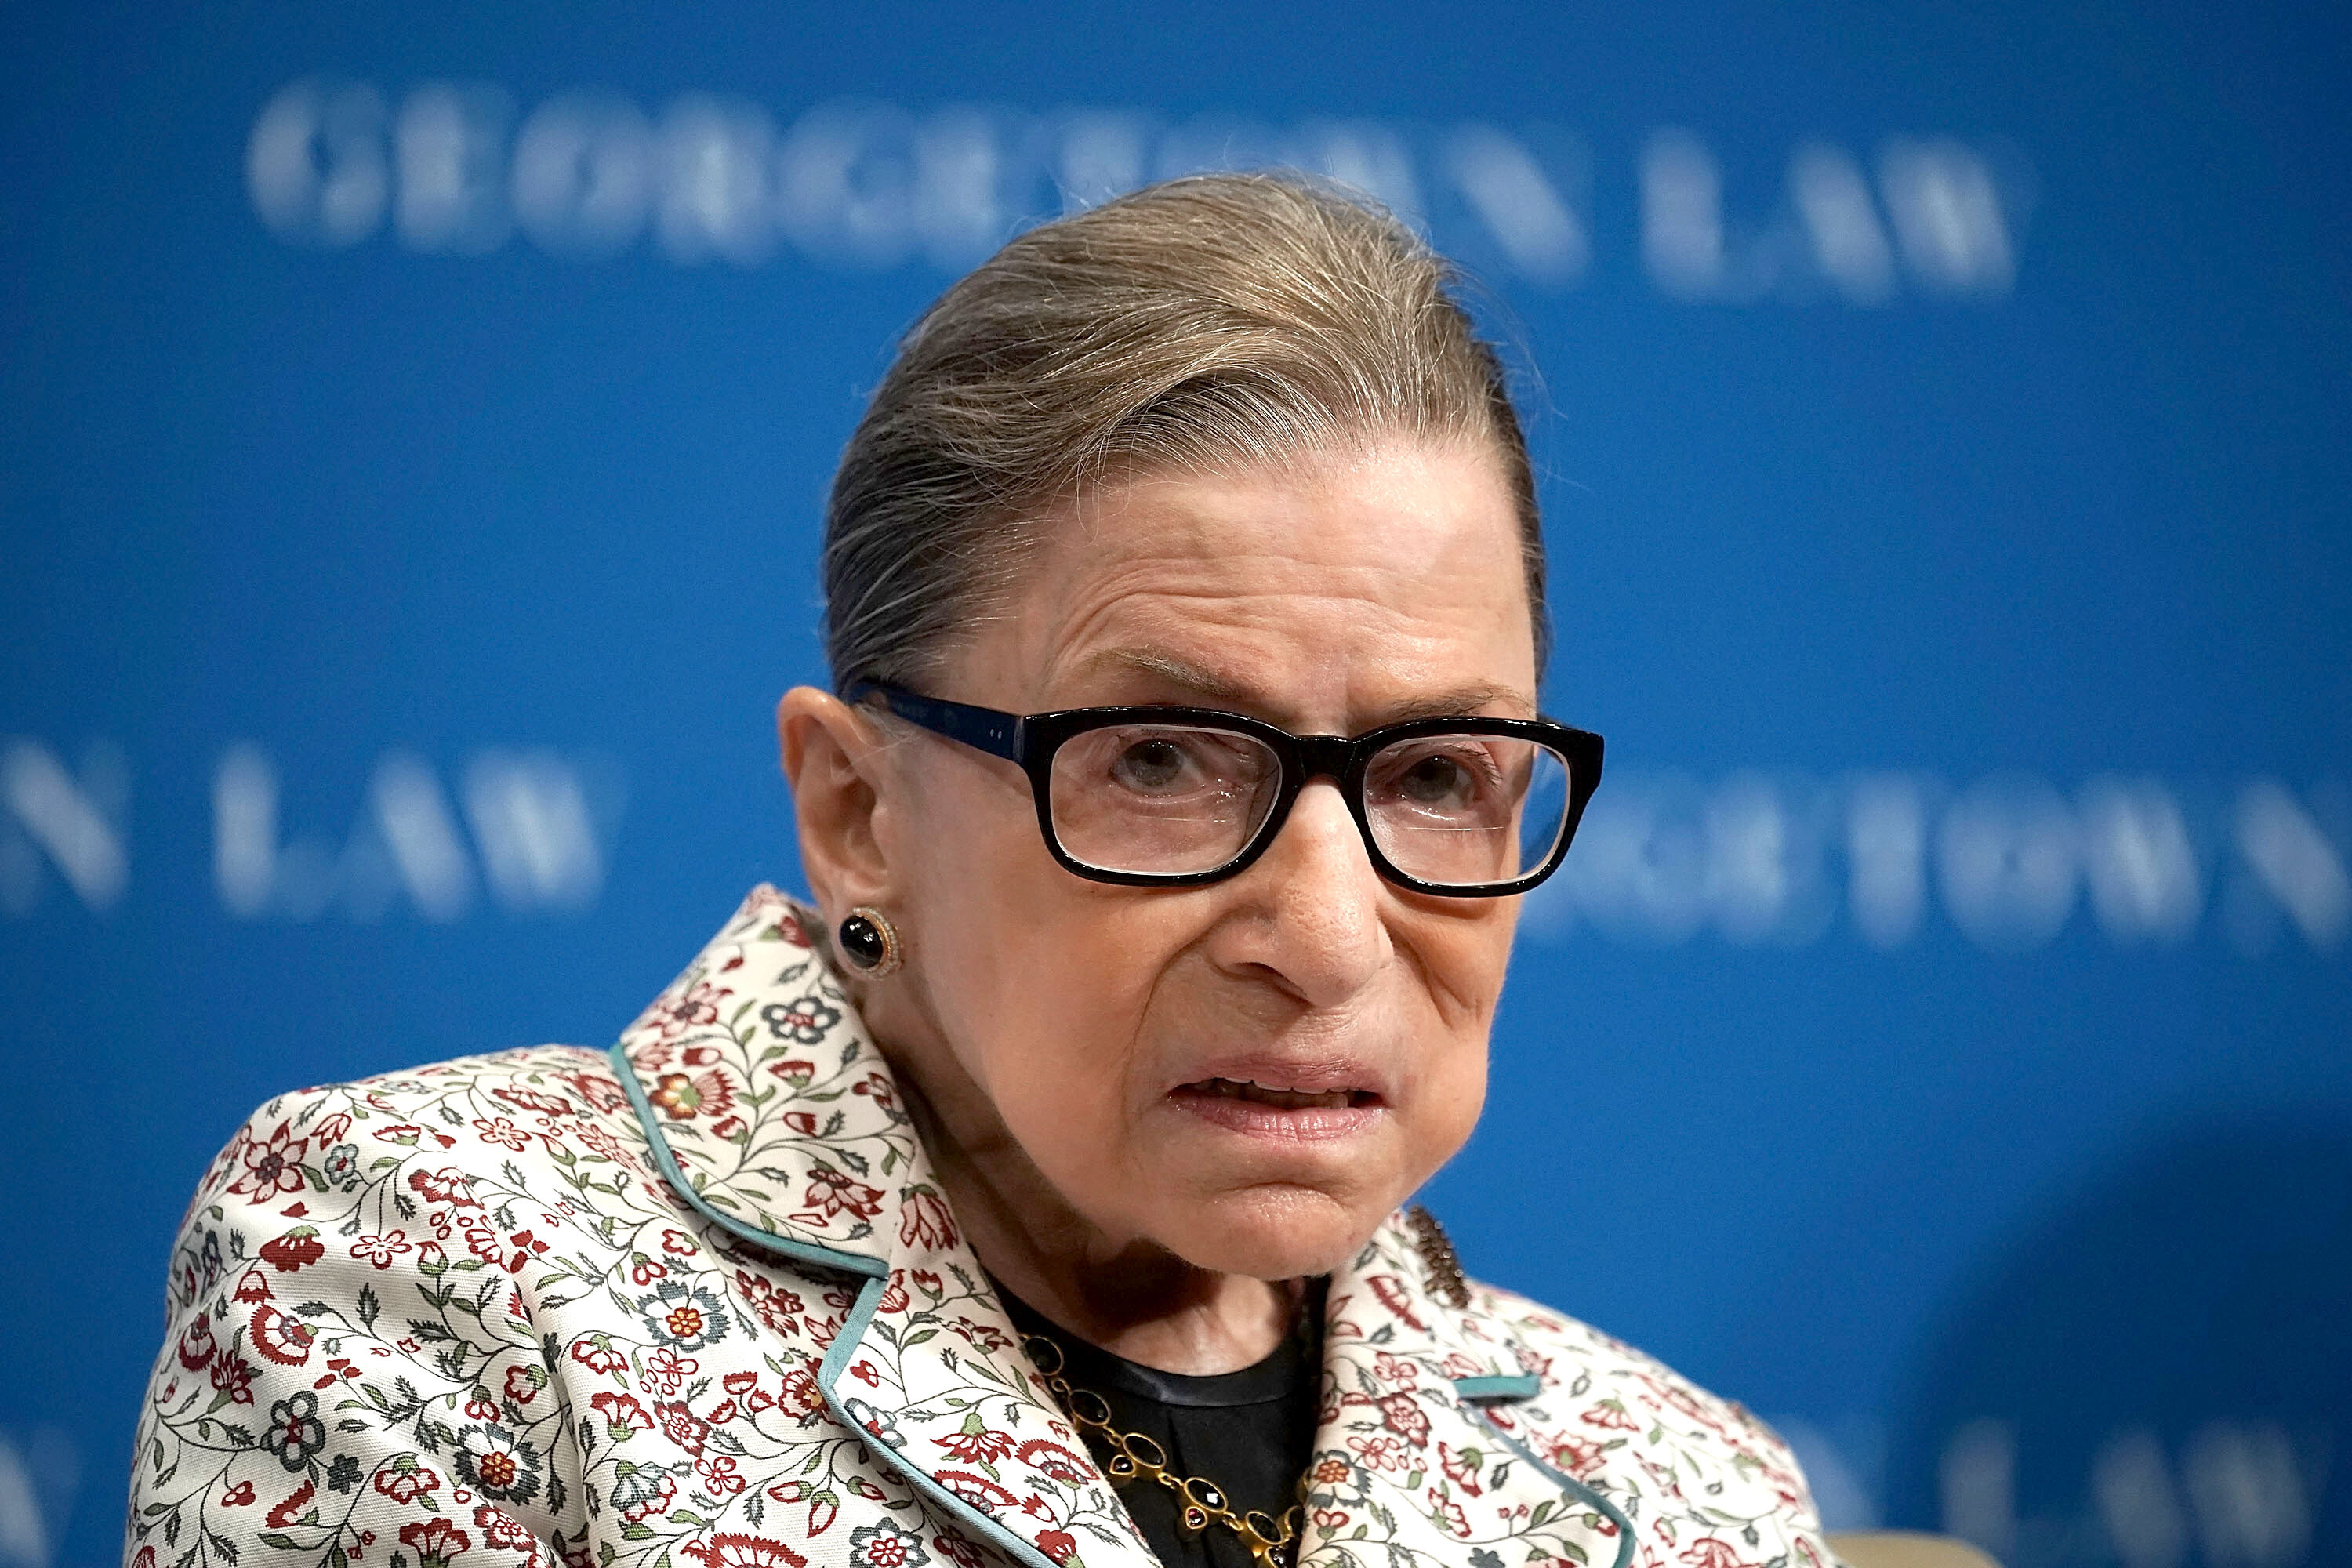 RBG's legacy one year after the liberal icon's death